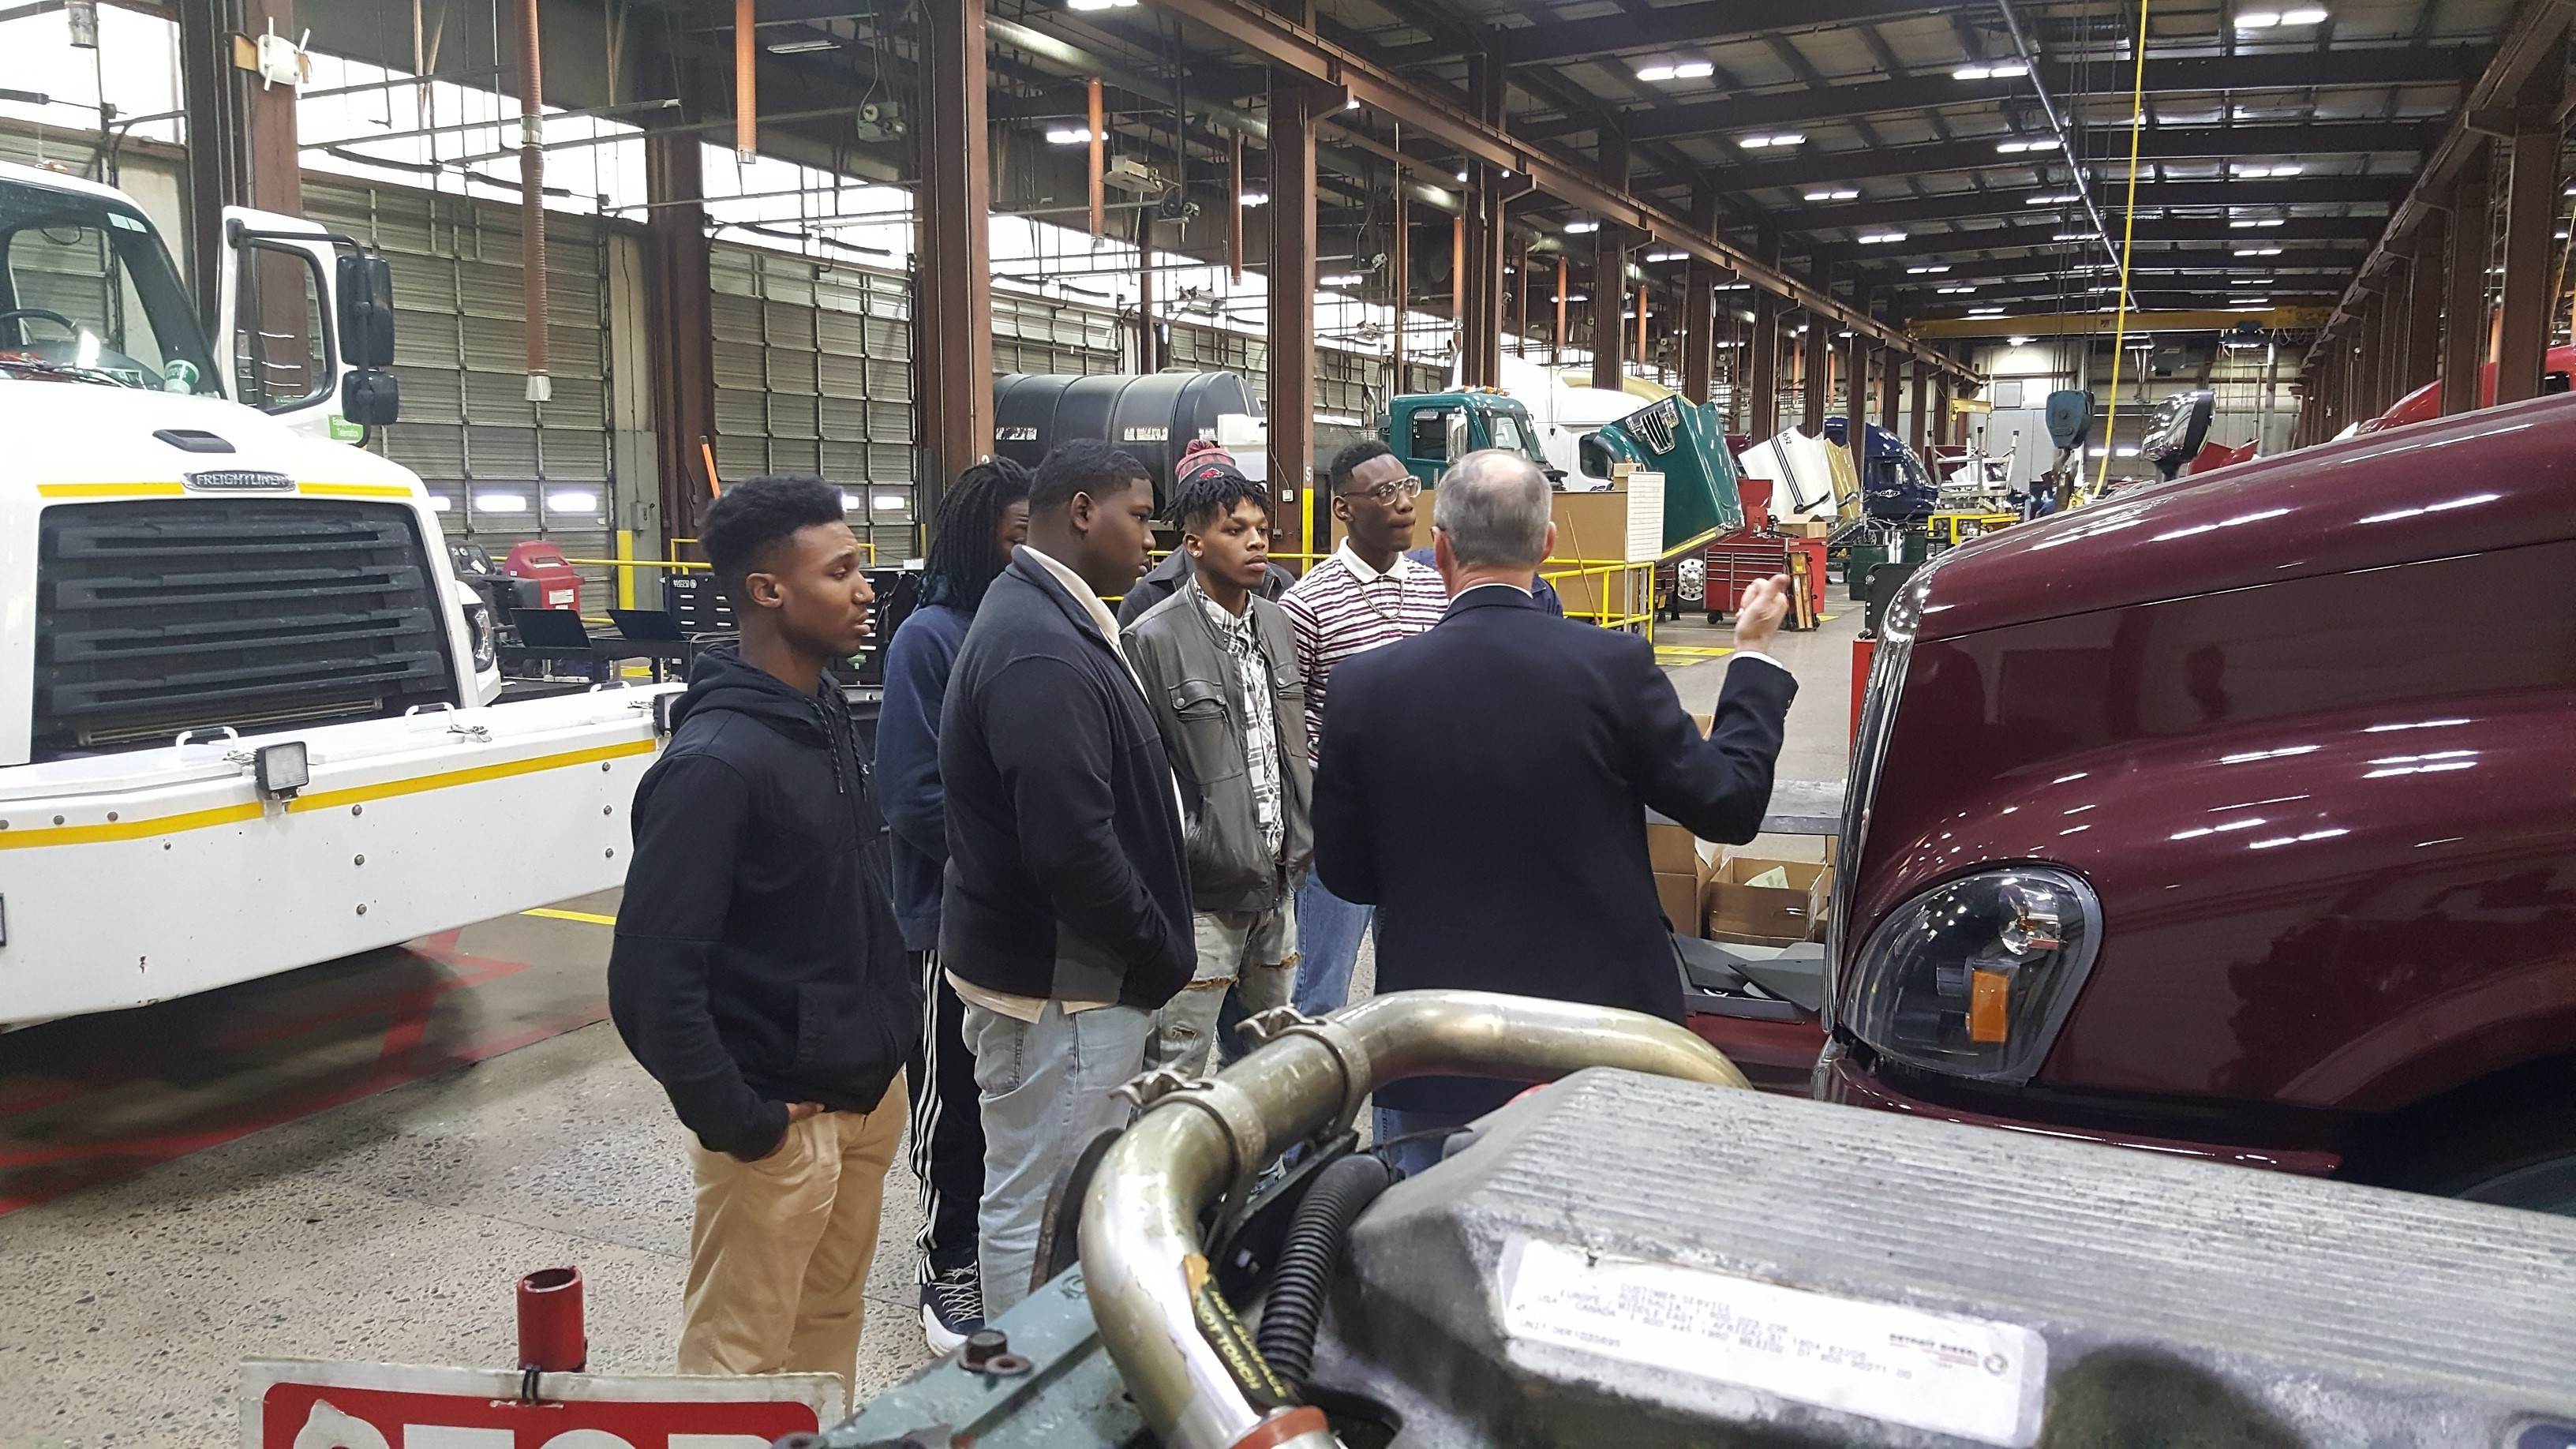 Academy students touring Trucking Center of Arkansas